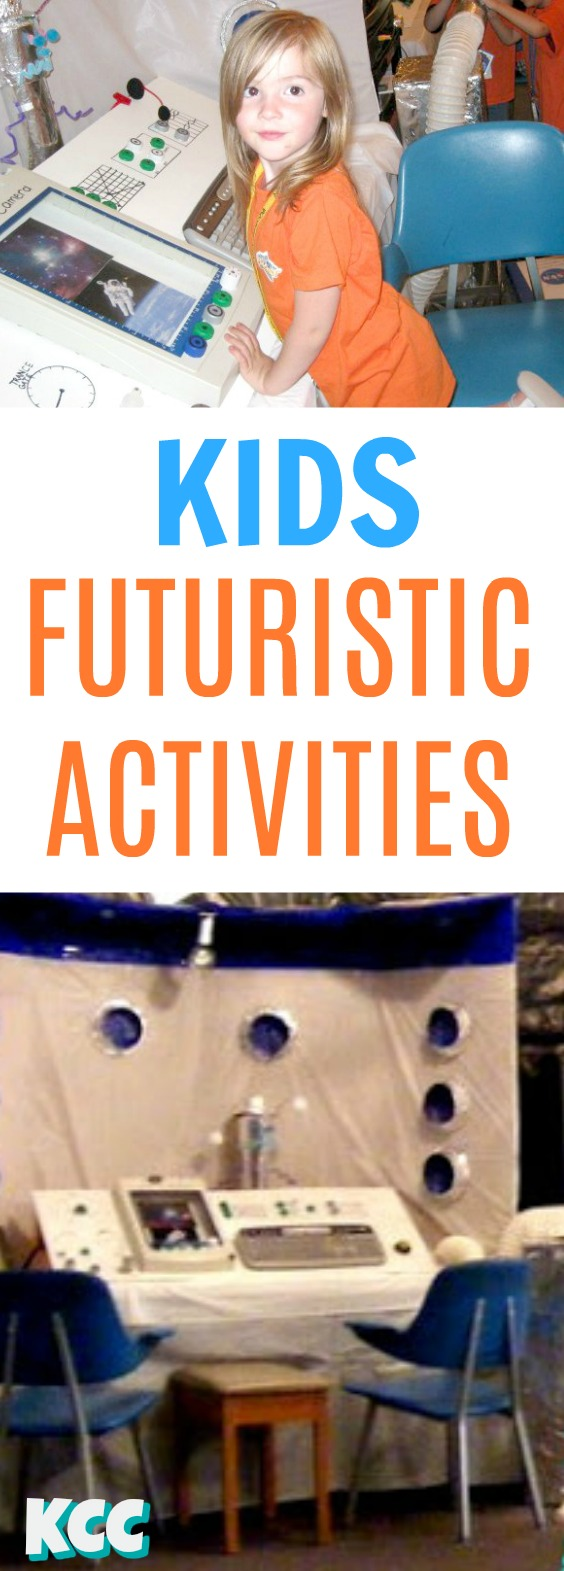 Futuristic Activities for Kids